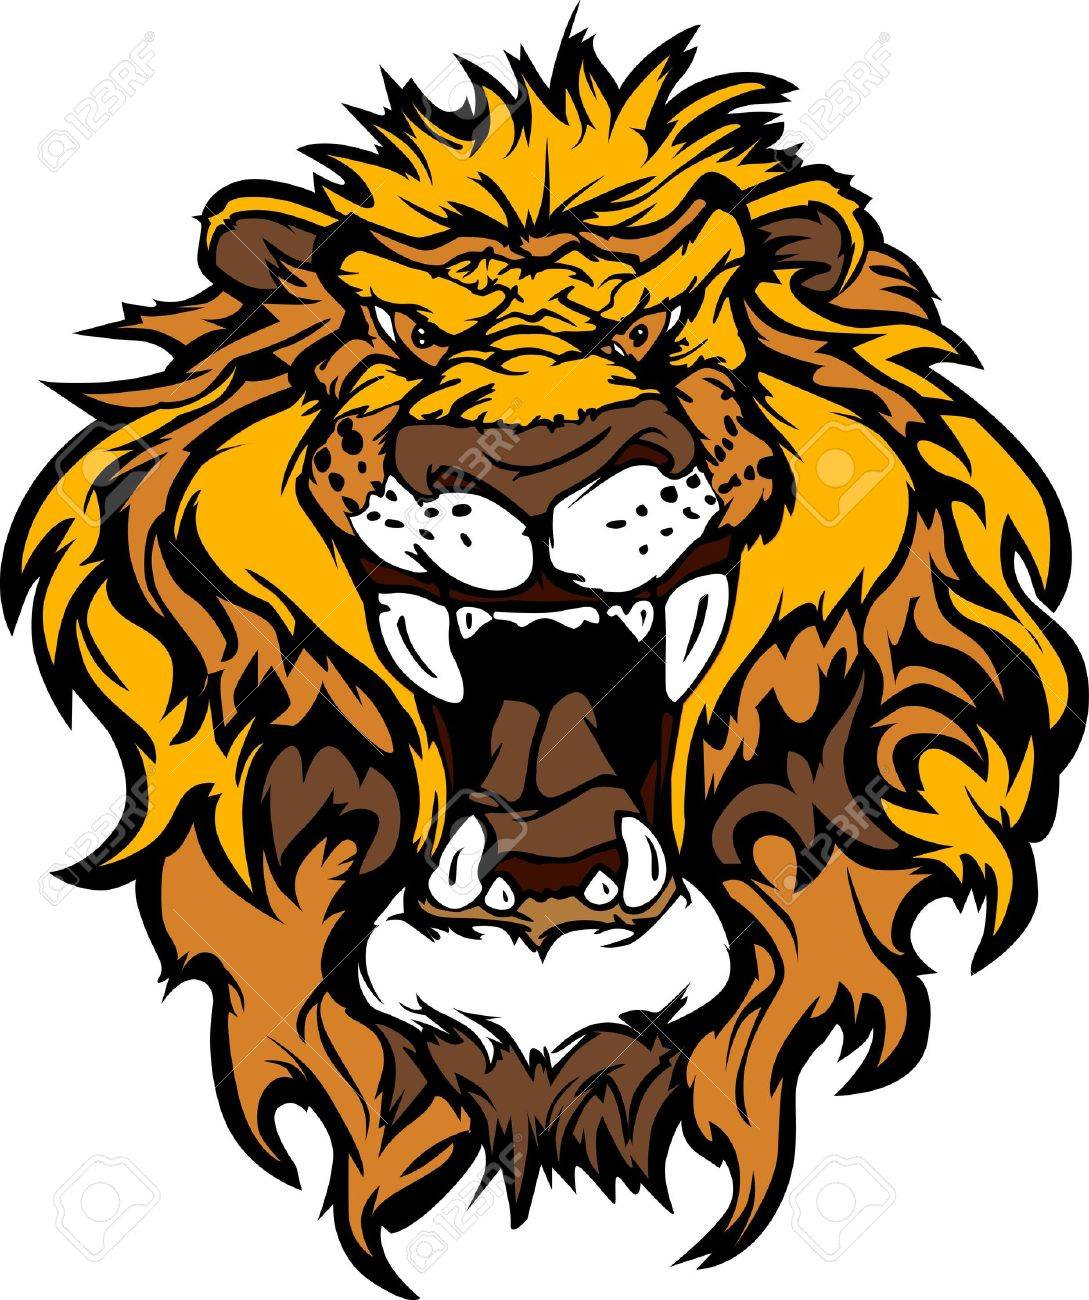 Cartoon Mascot Image of a Lion Head Stock Vector - 11107639